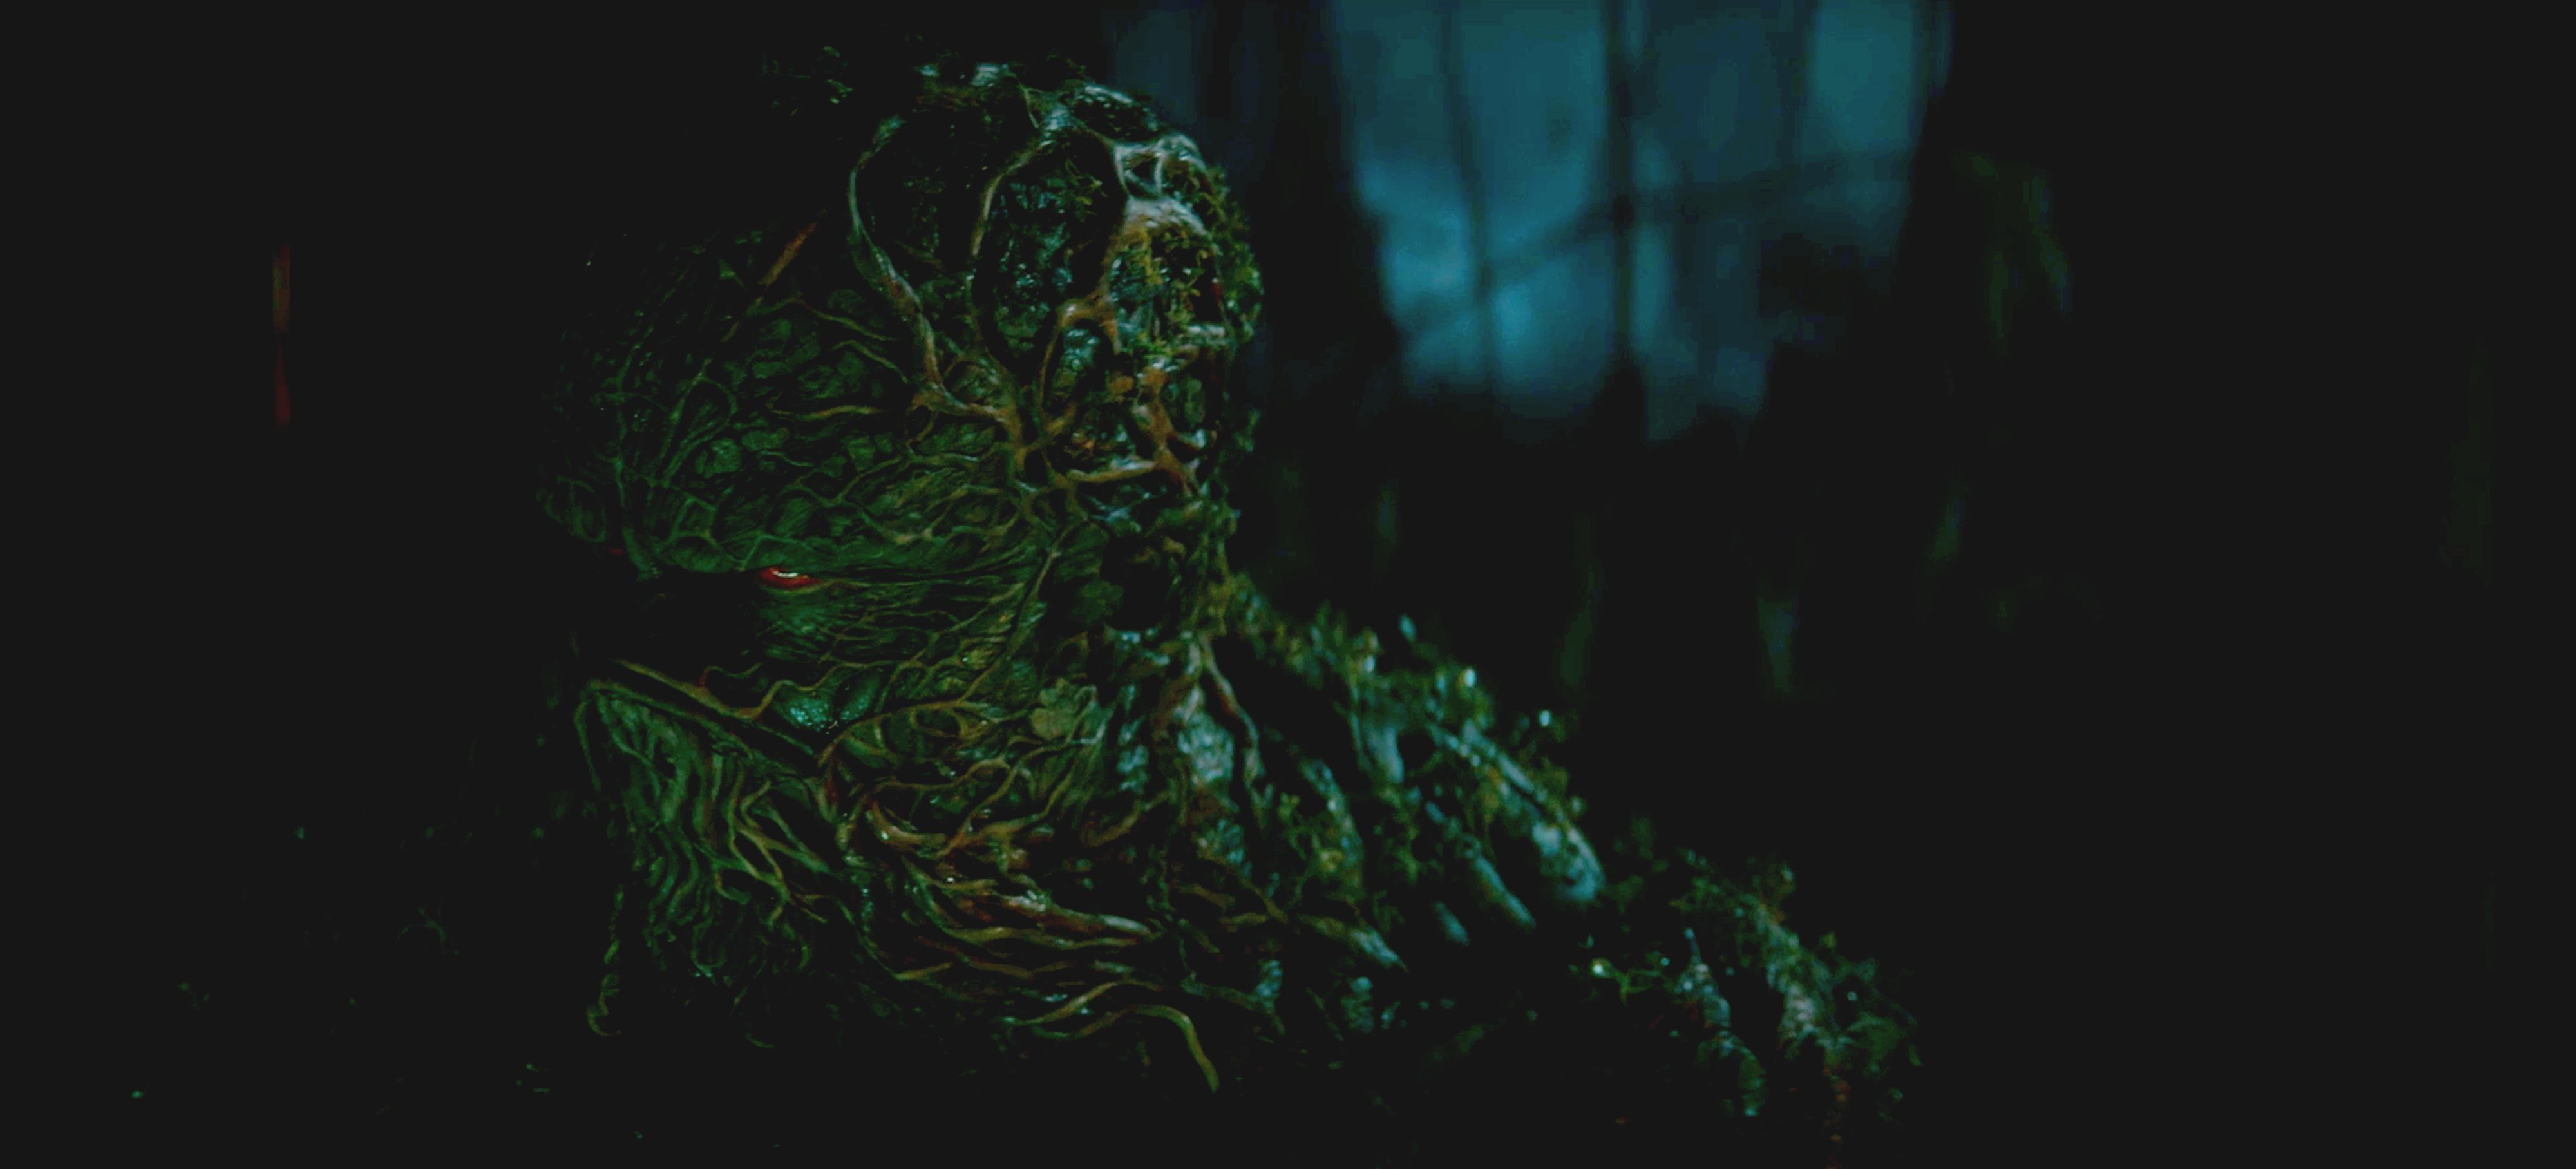 Swamp Thing searches for what his senses are telling him